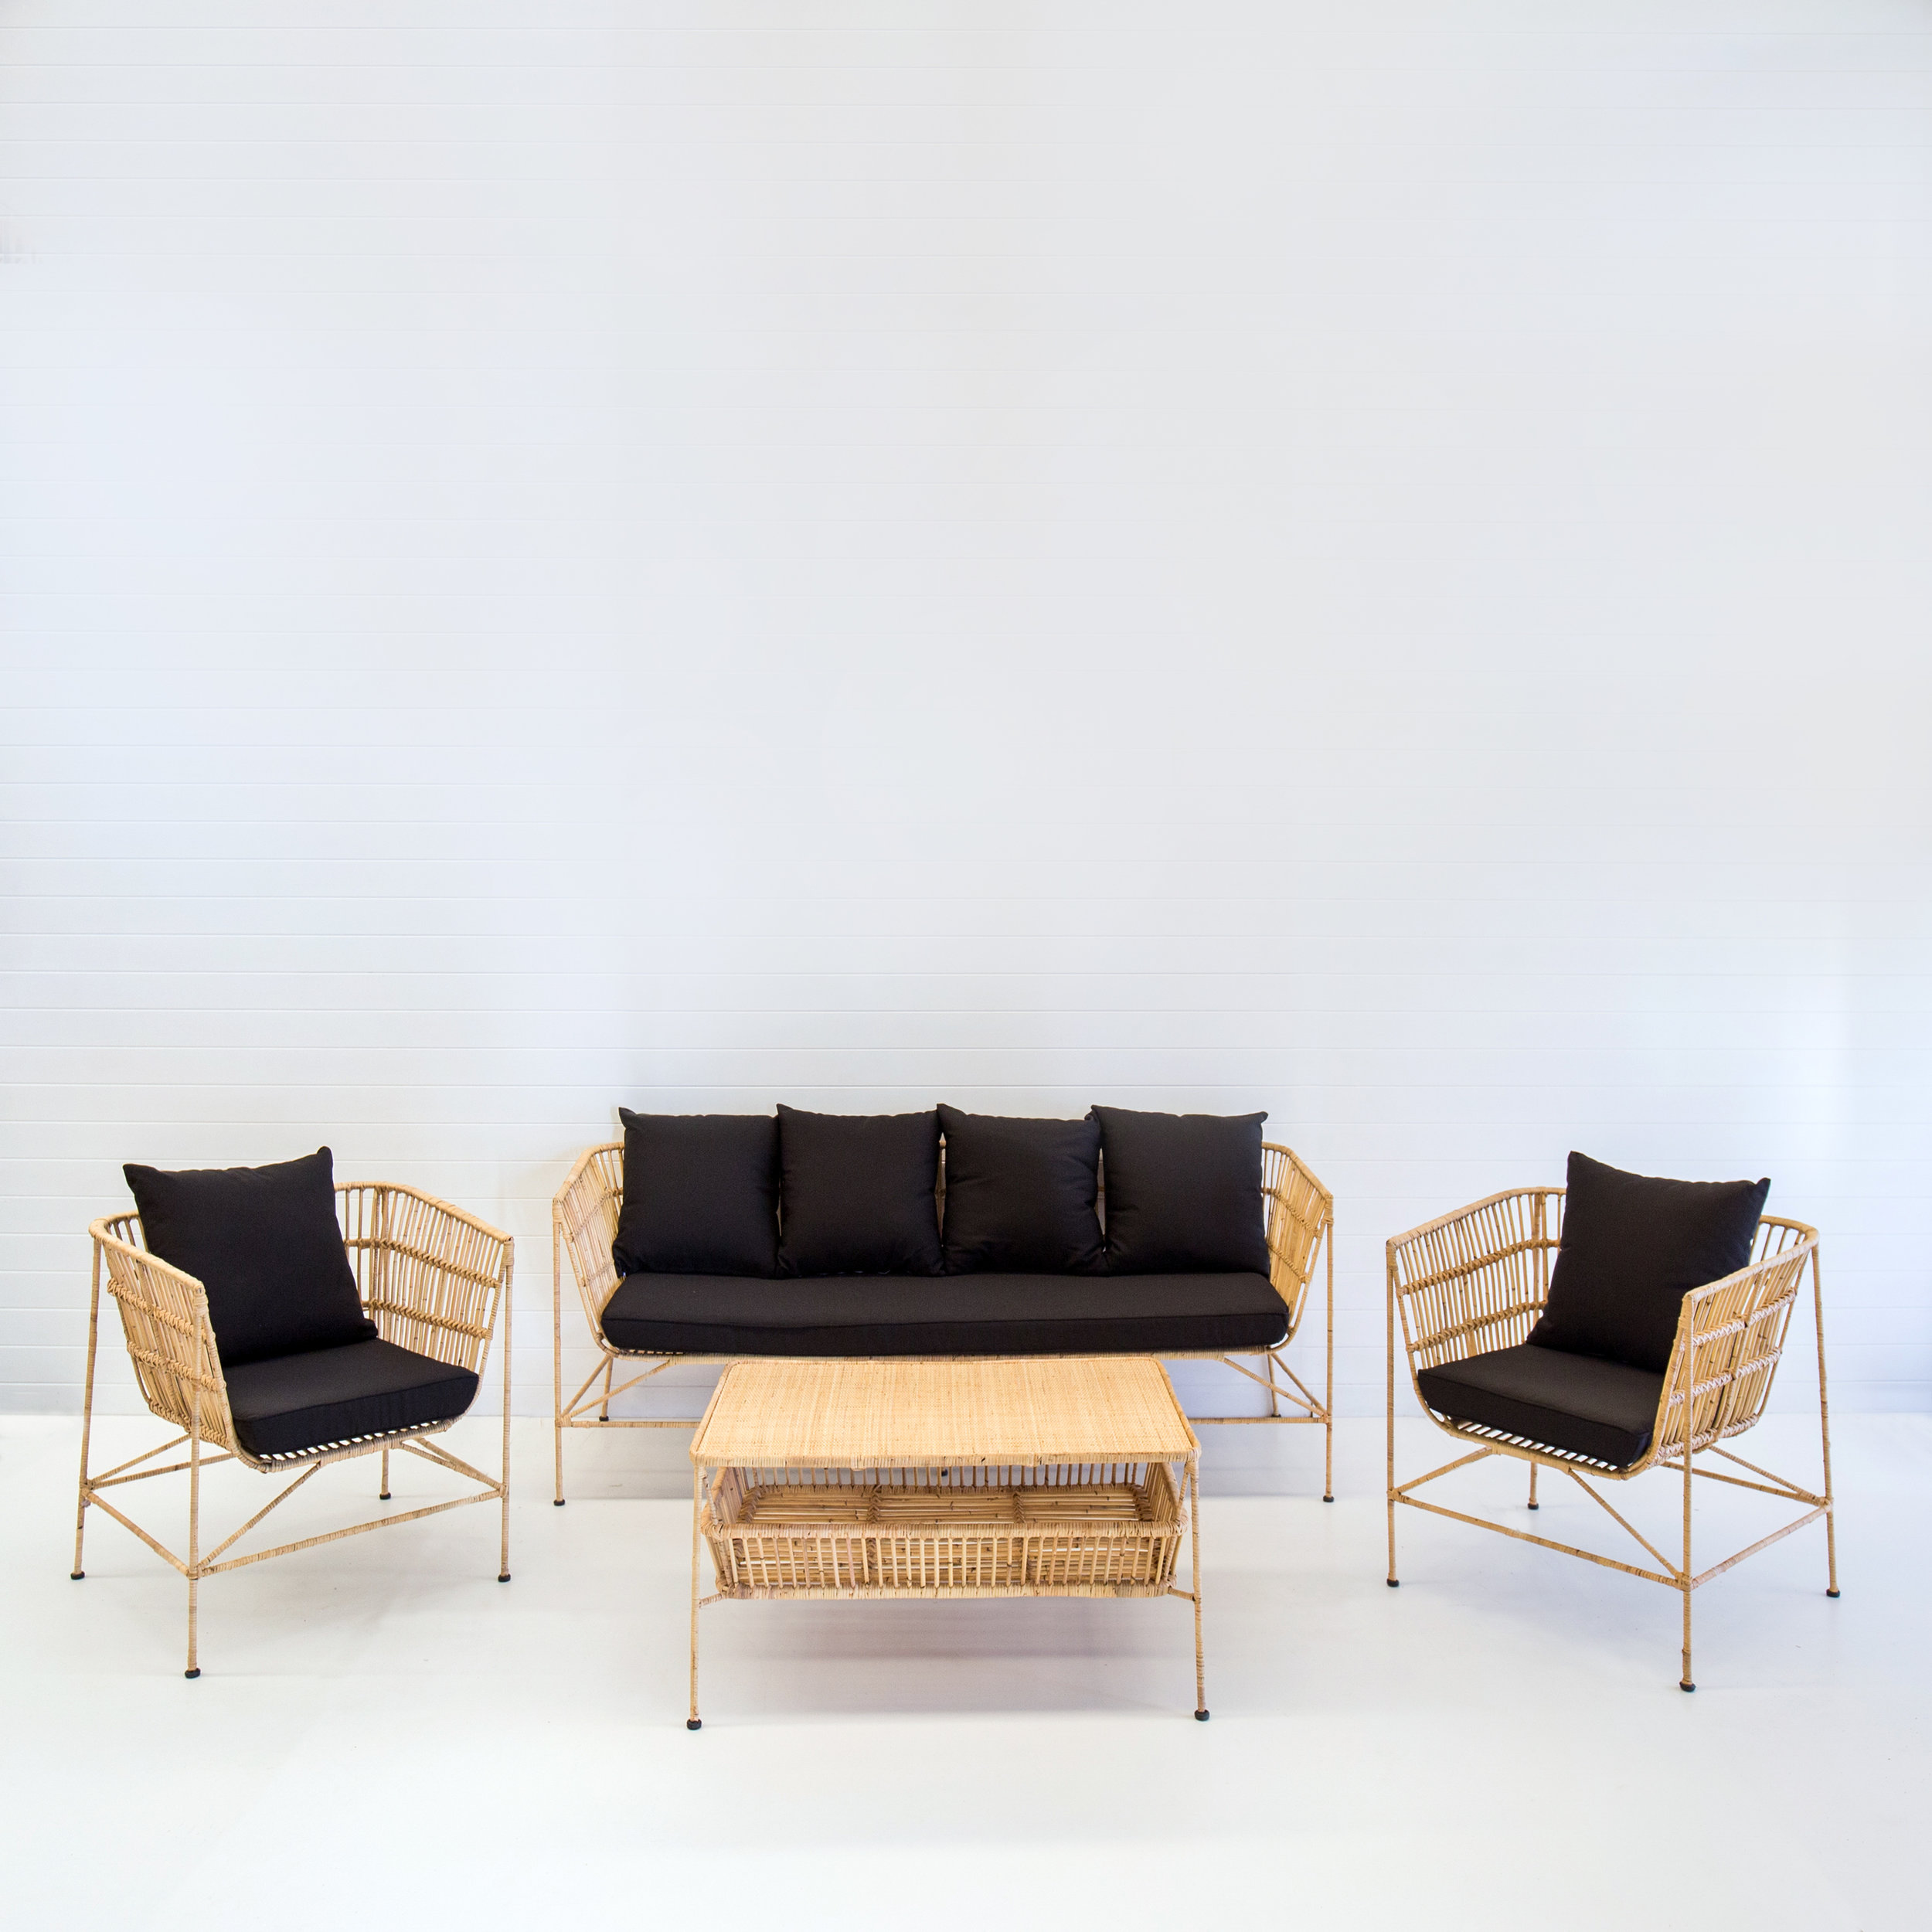 INDIE NATURAL SOFA PACKAGE (WITH BLACK CUSHIONS)